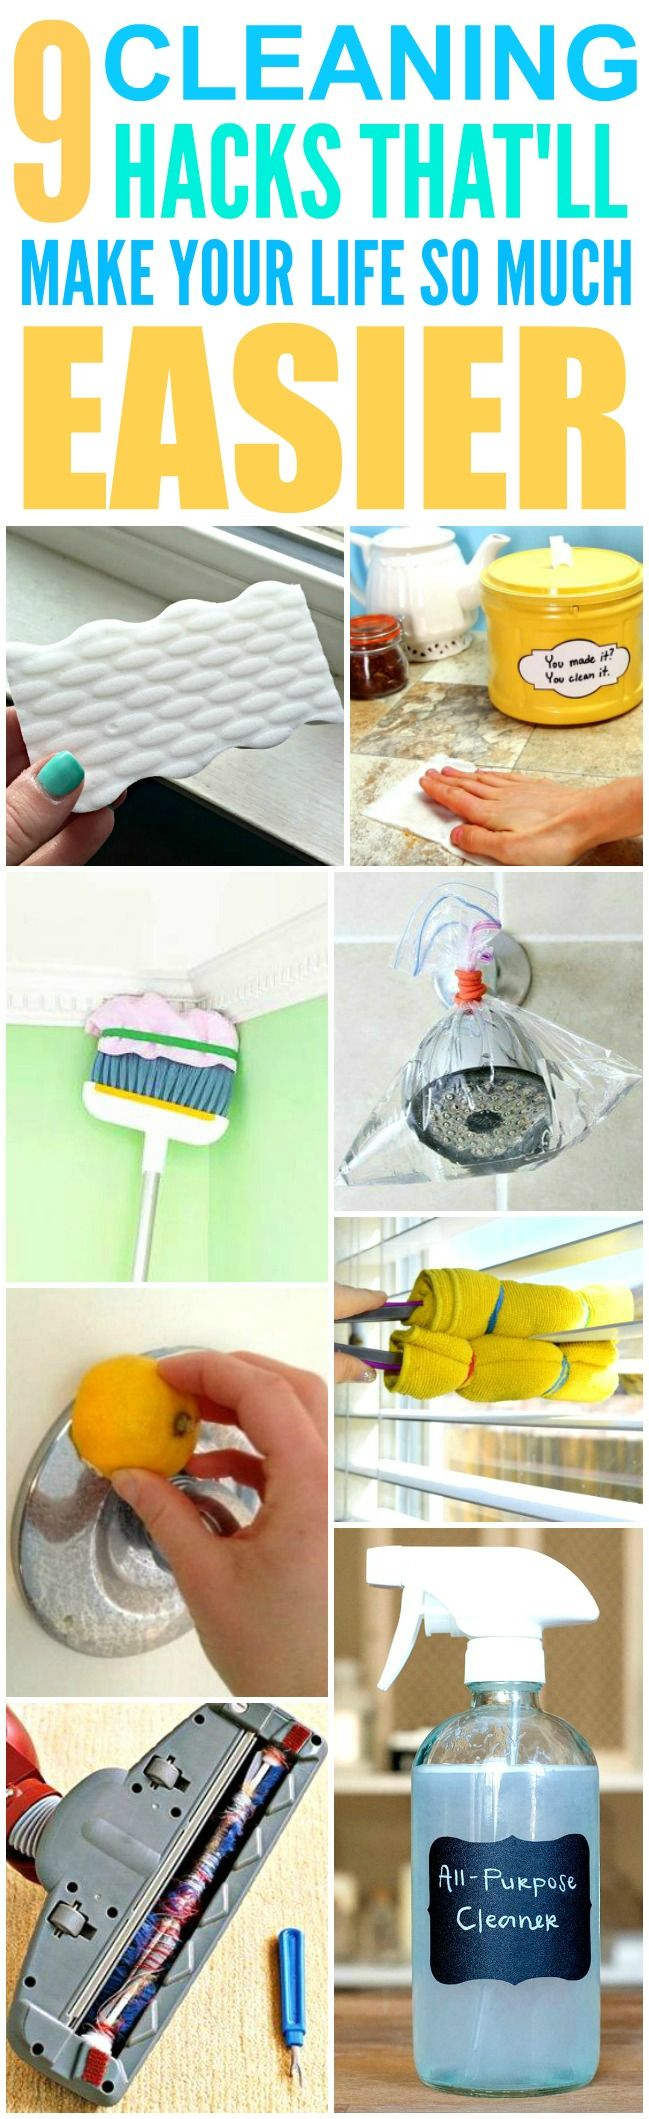 Best 20 so happy ideas on pinterest feeling happy Cool household hacks